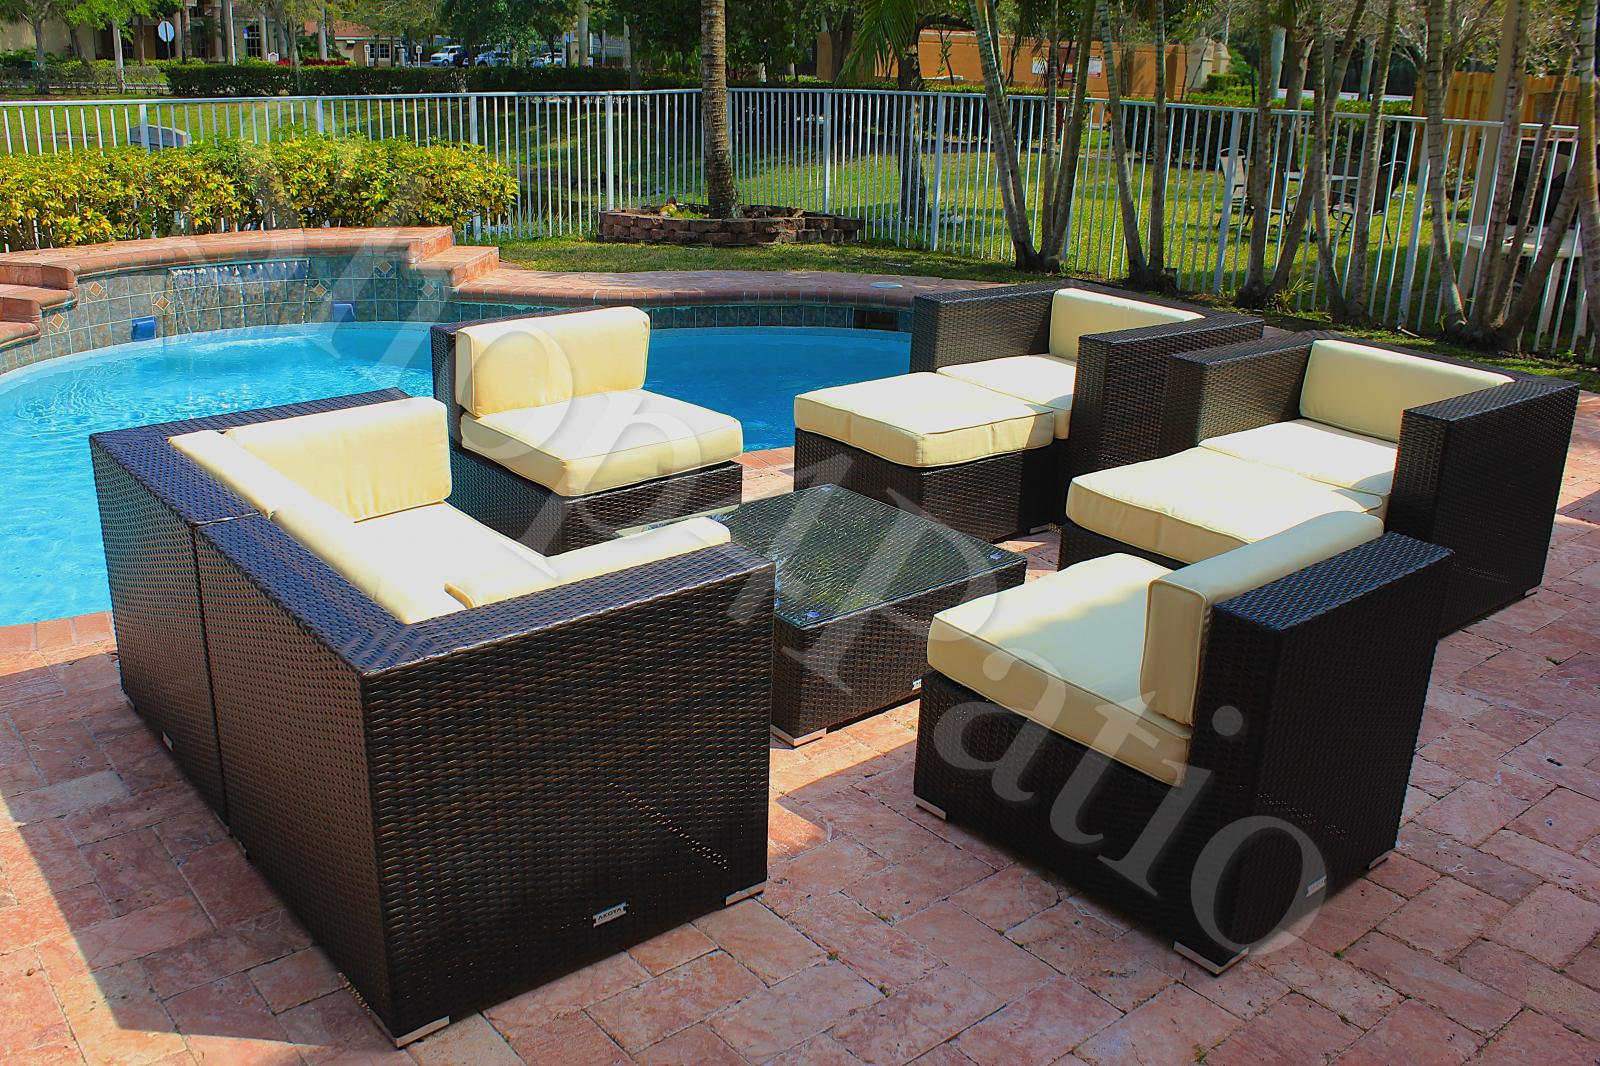 Patio Furniture 9 Piece Modern Garden Wicker Modular Sofa Sectional Outdoor Set